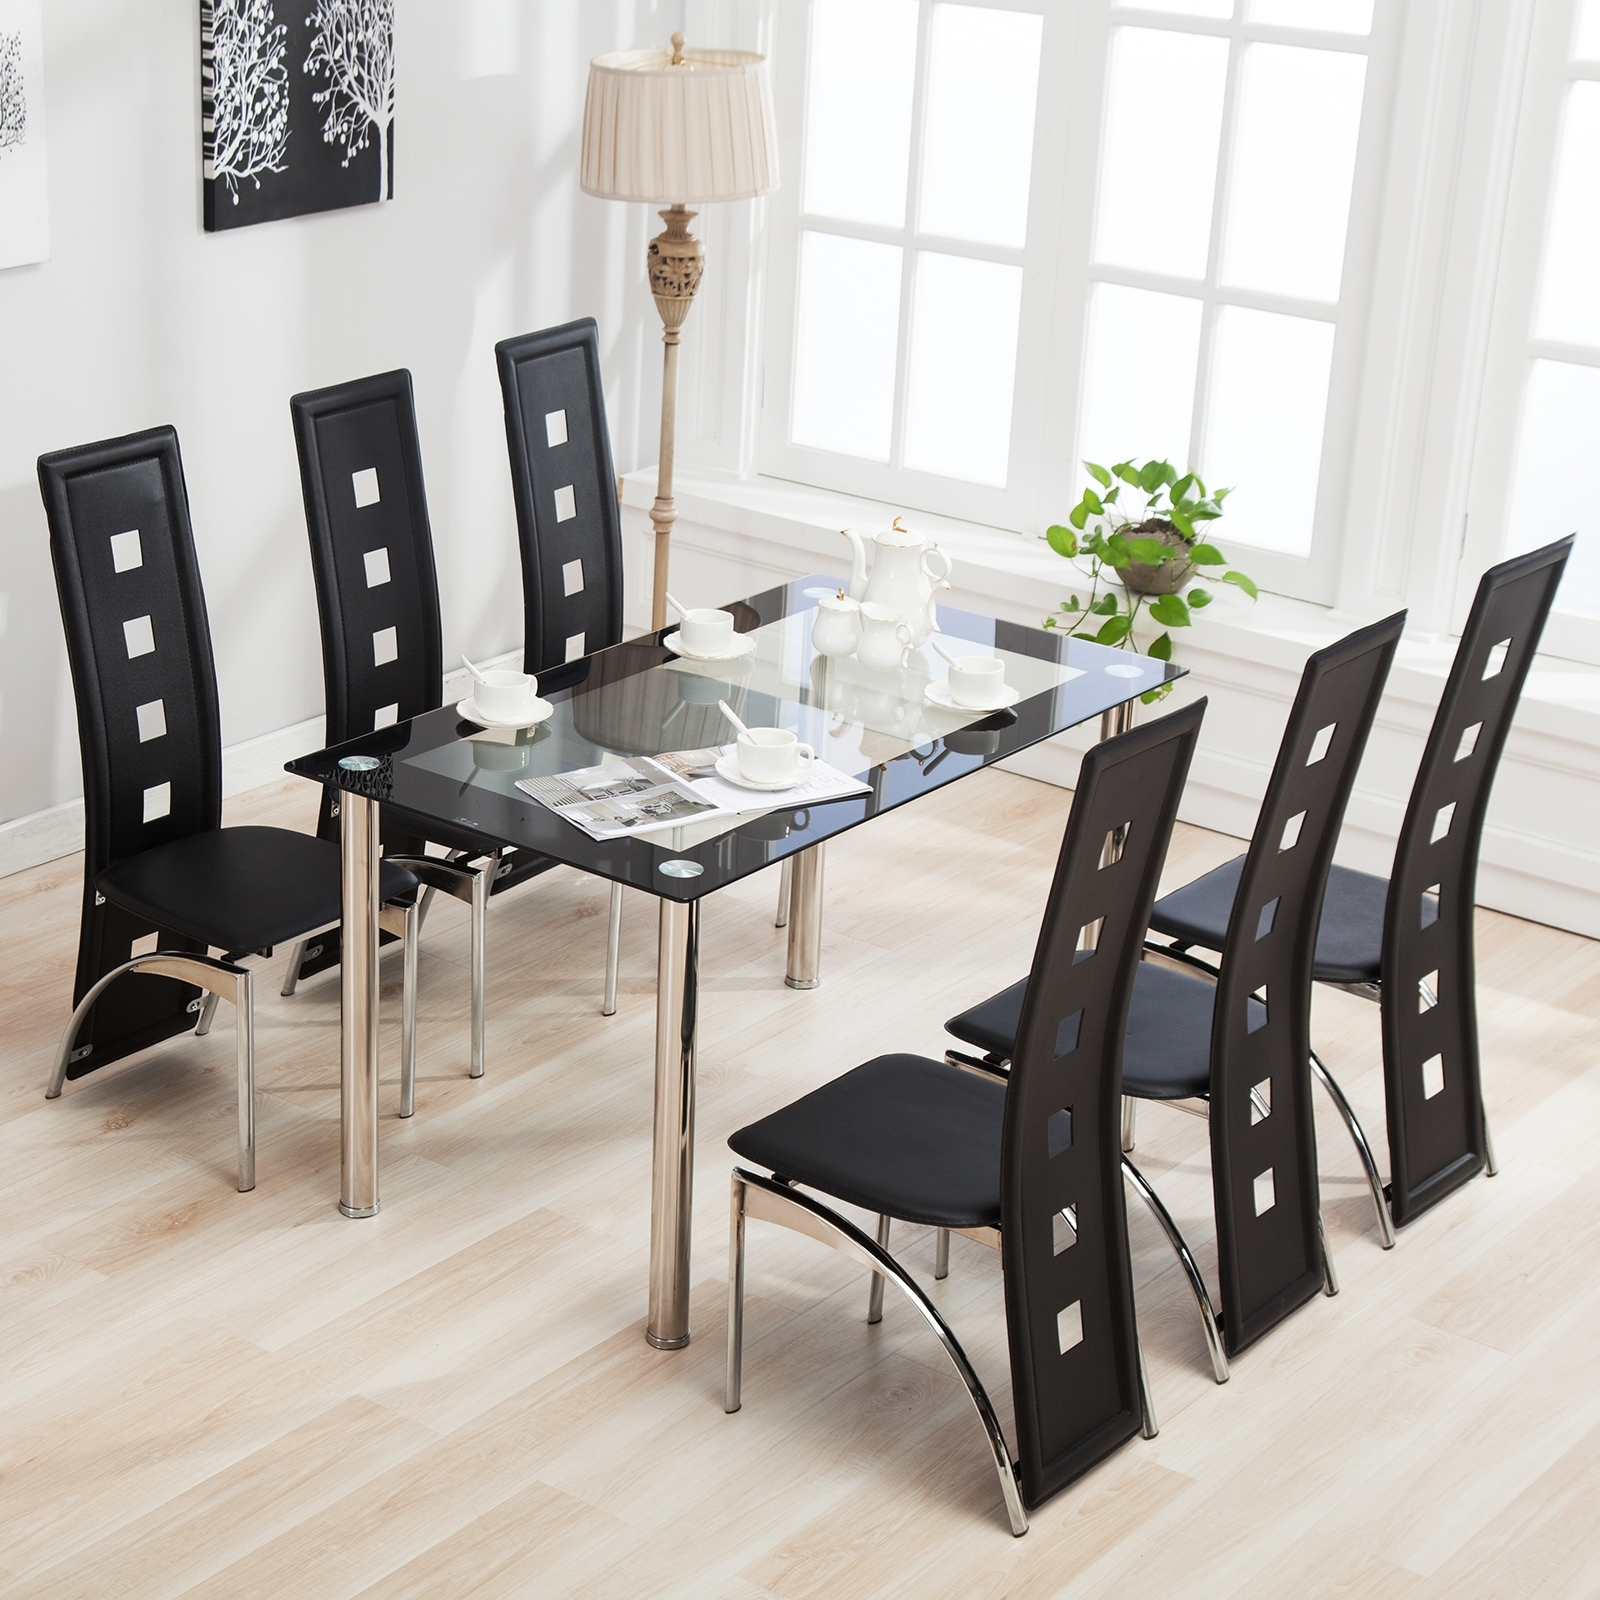 Popular Dining Room Glass Tables Sets Throughout Mecor 7Pcs Dining Table Set 6 Chairs Glass Metal Kitchen Room (View 17 of 25)